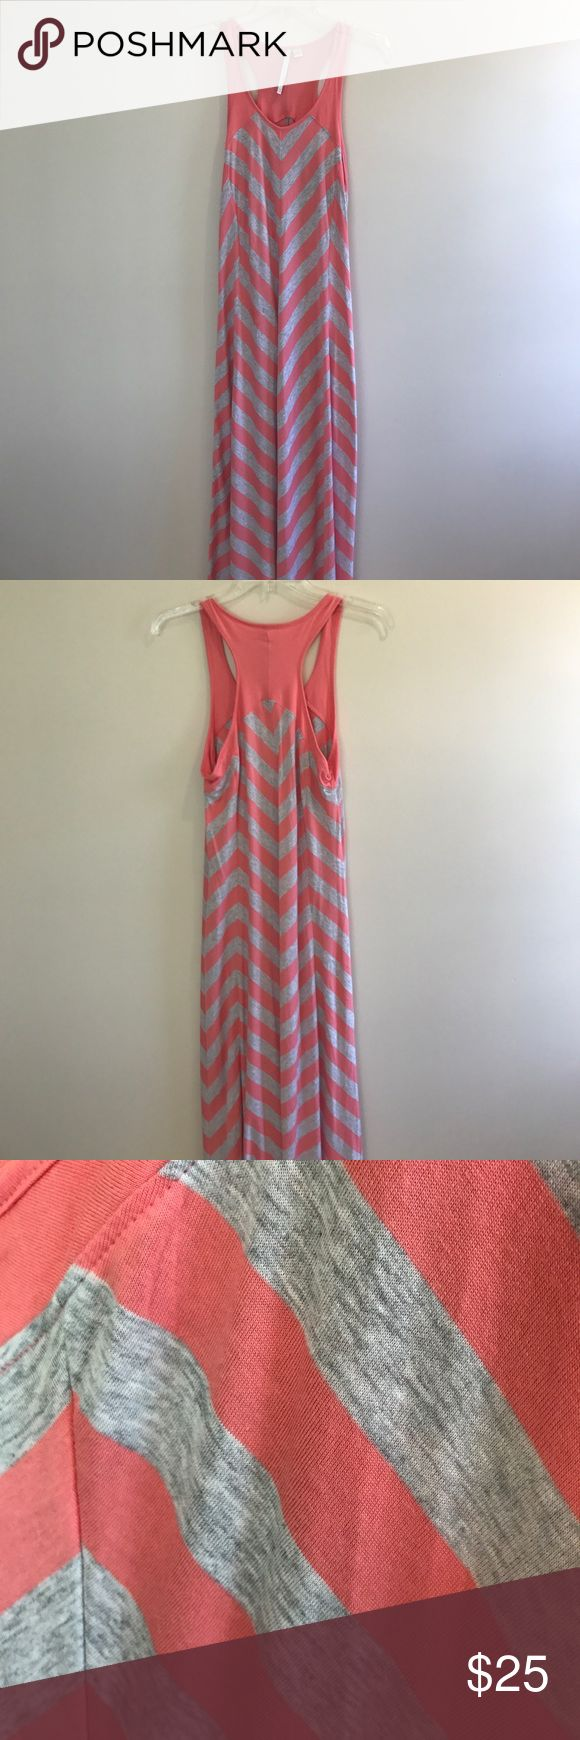 Coral and heather grey chevron maxi dress NWOT- Lauren Conrad coral and heather grey chevron print maxi dress LC Lauren Conrad Dresses Maxi